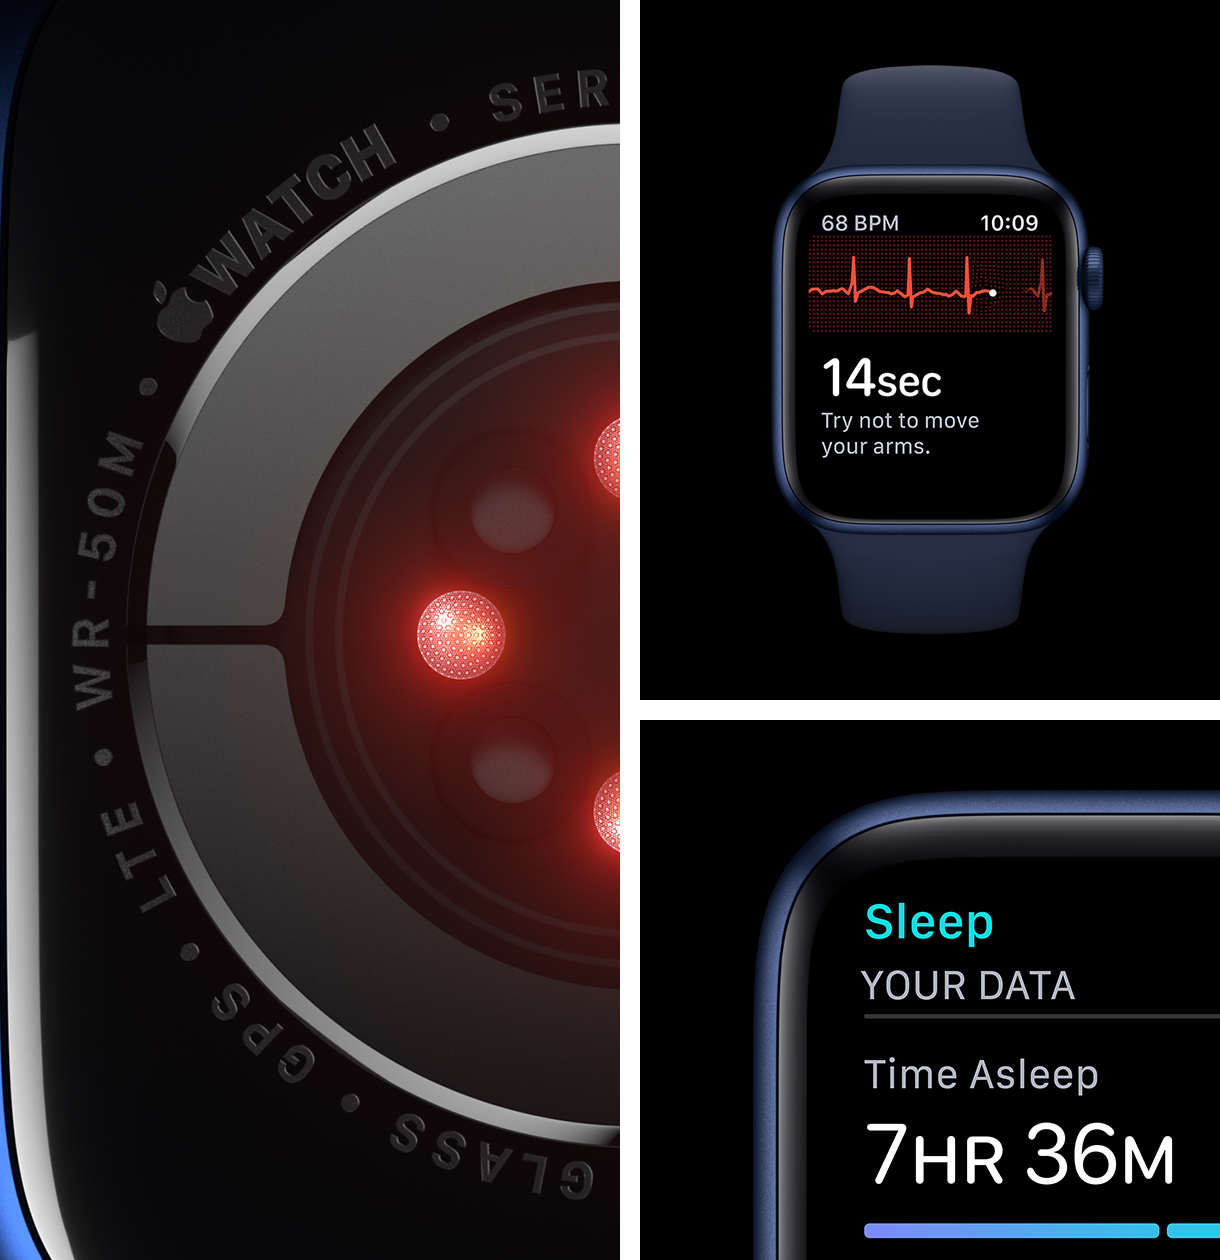 The Apple Watch Series 6 helps you monitor your blood oxygen, ECG and sleep levels.